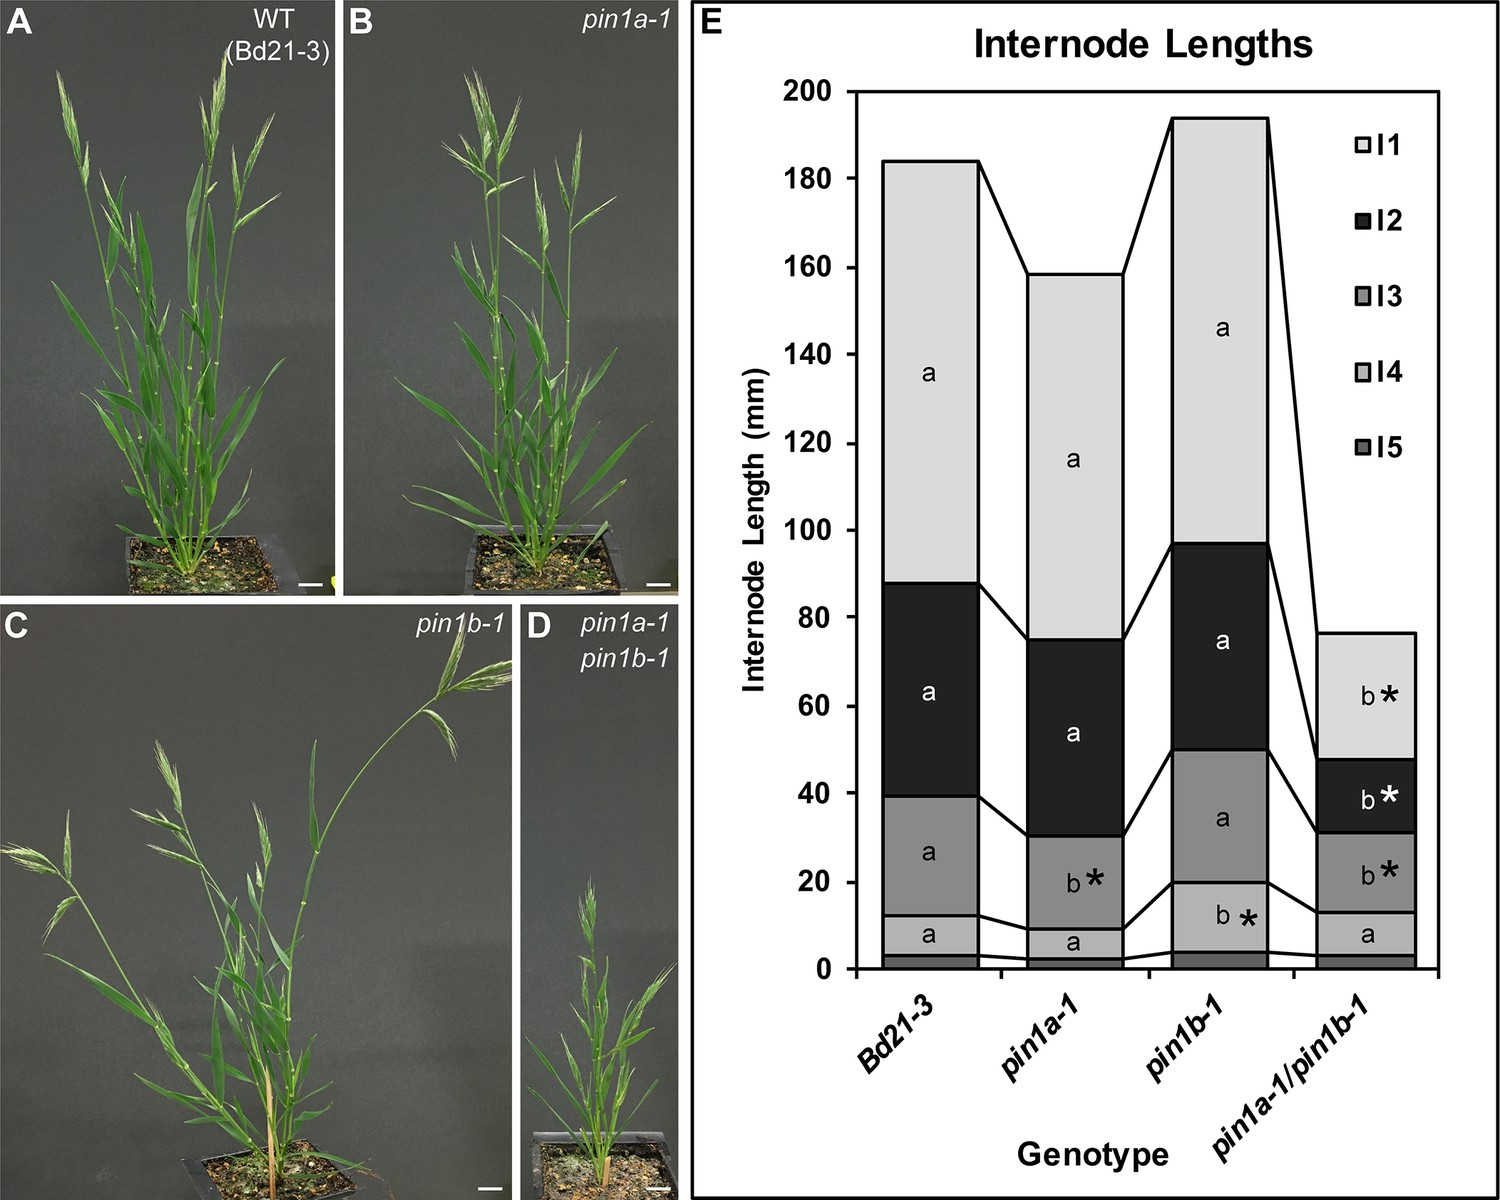 Cross-species functional diversity within the PIN auxin